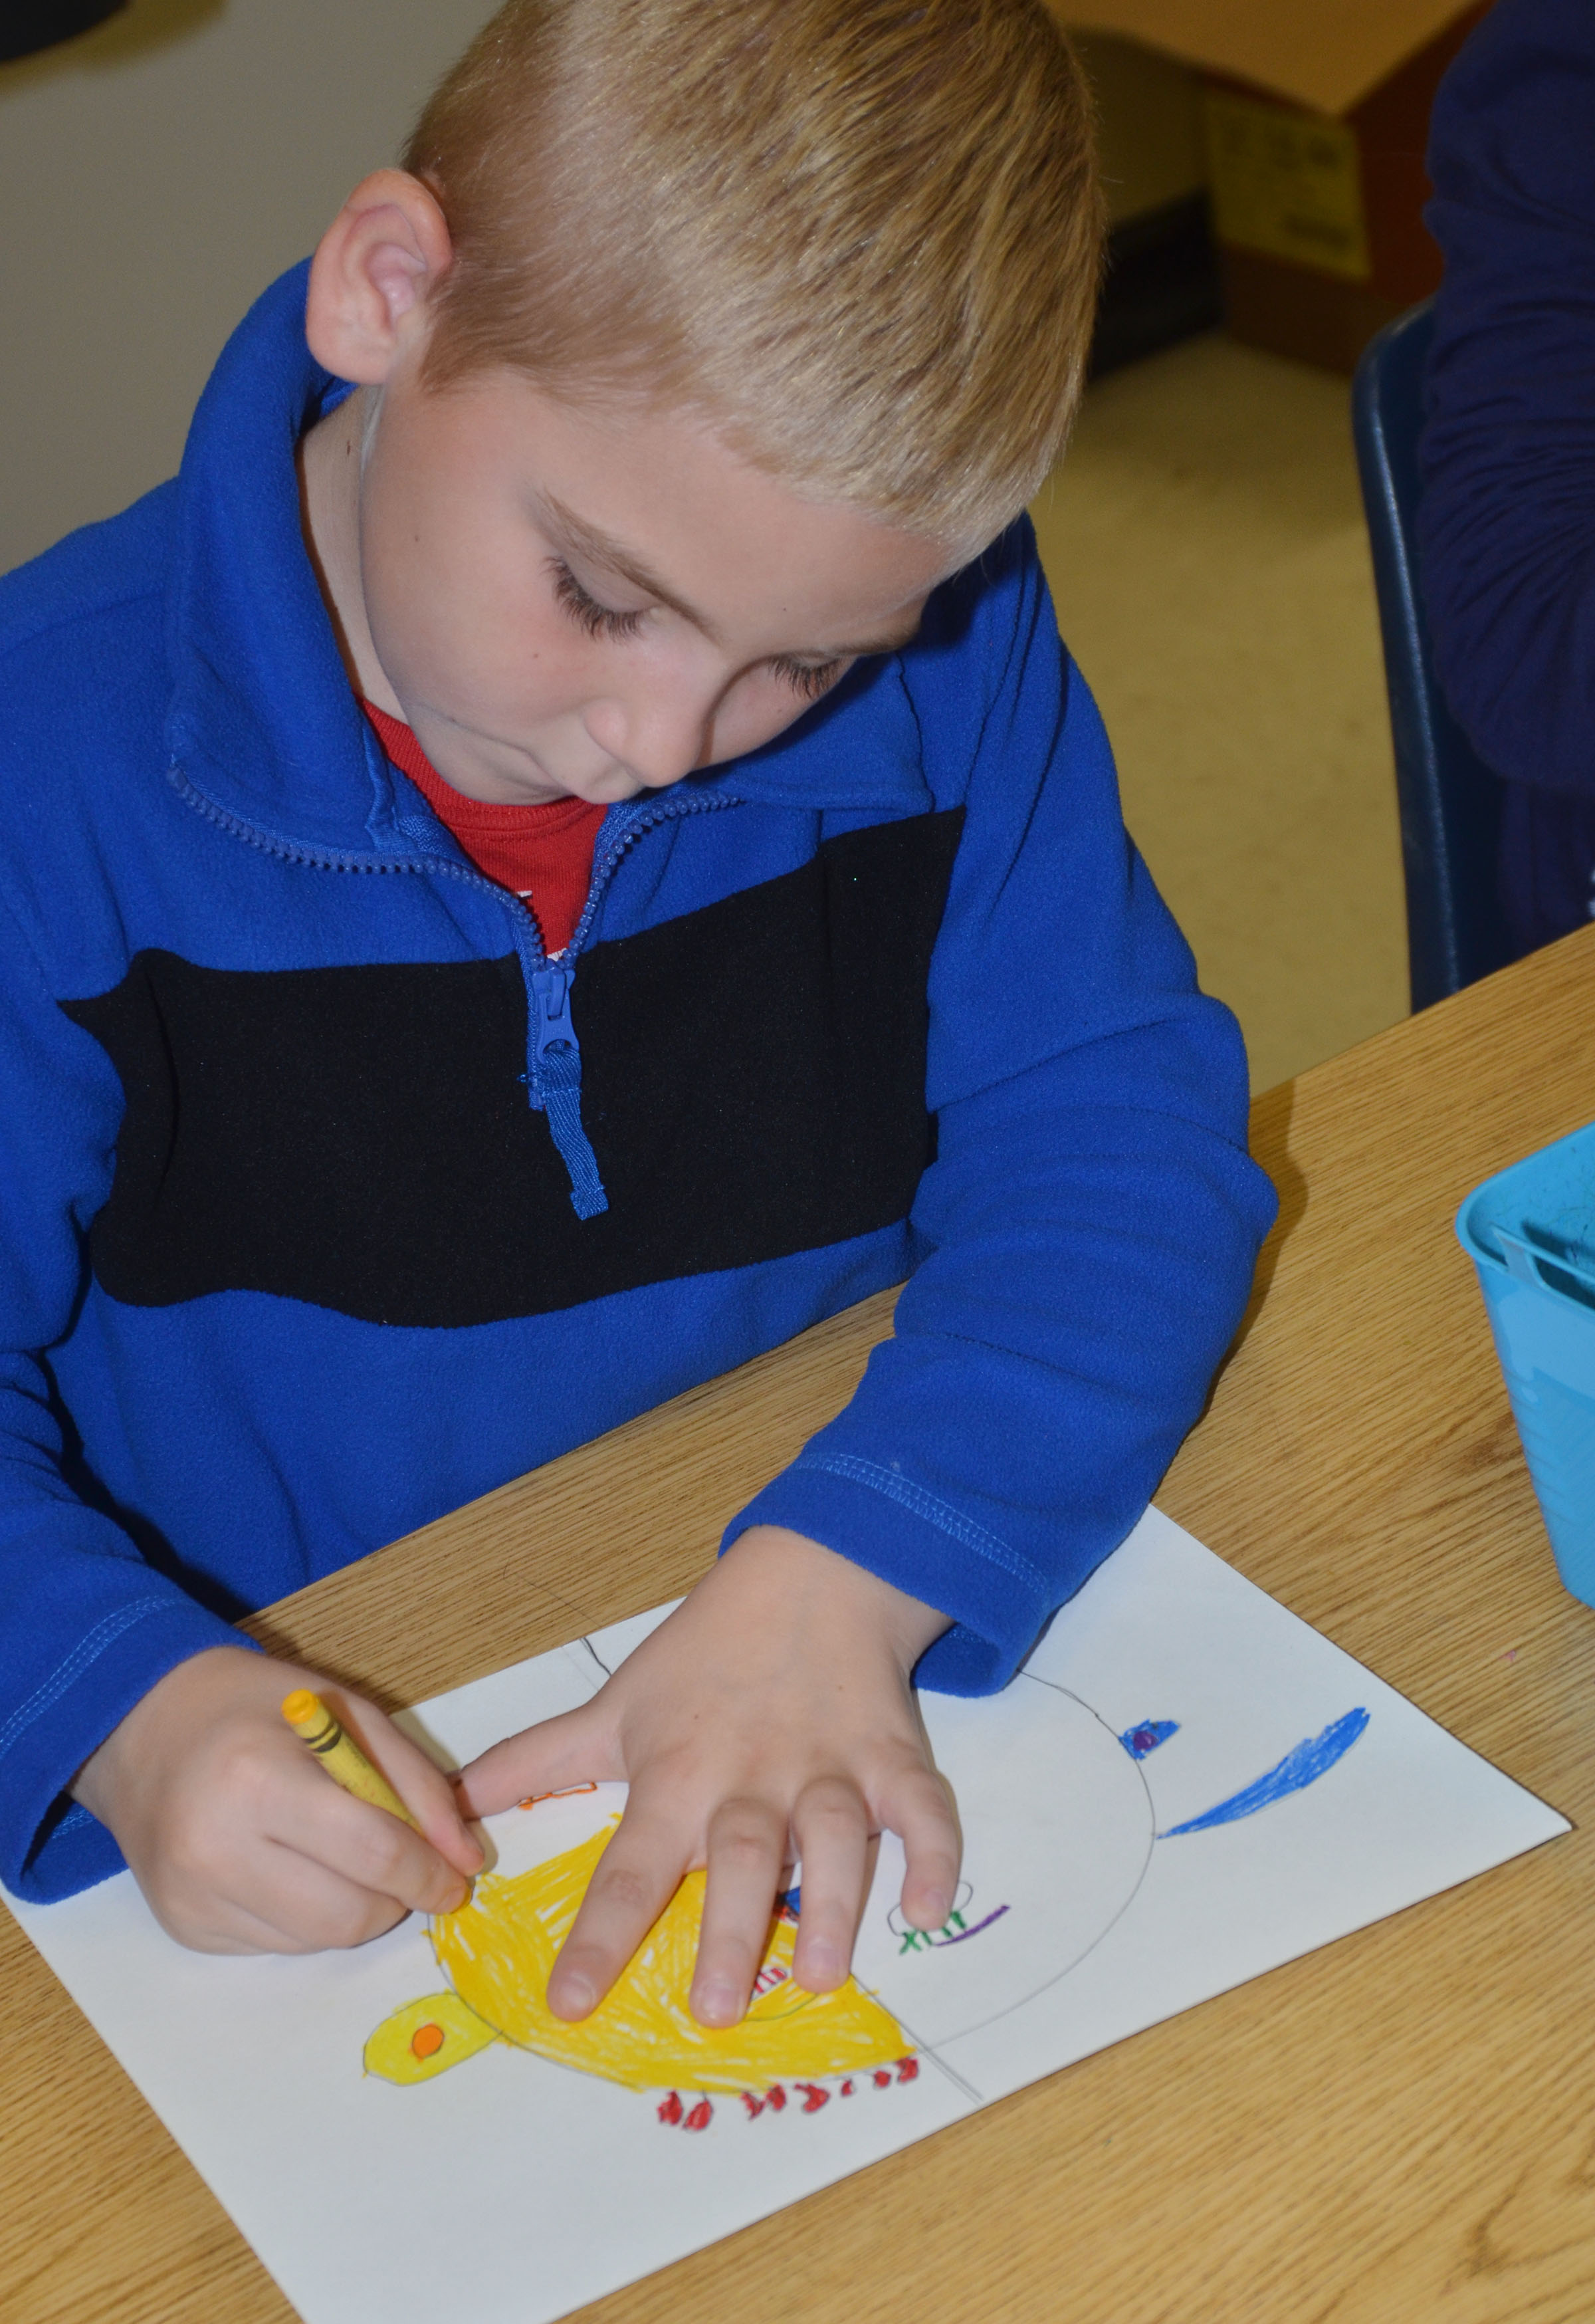 CES second-grader Joseph Greer colors his warm and cool color face.